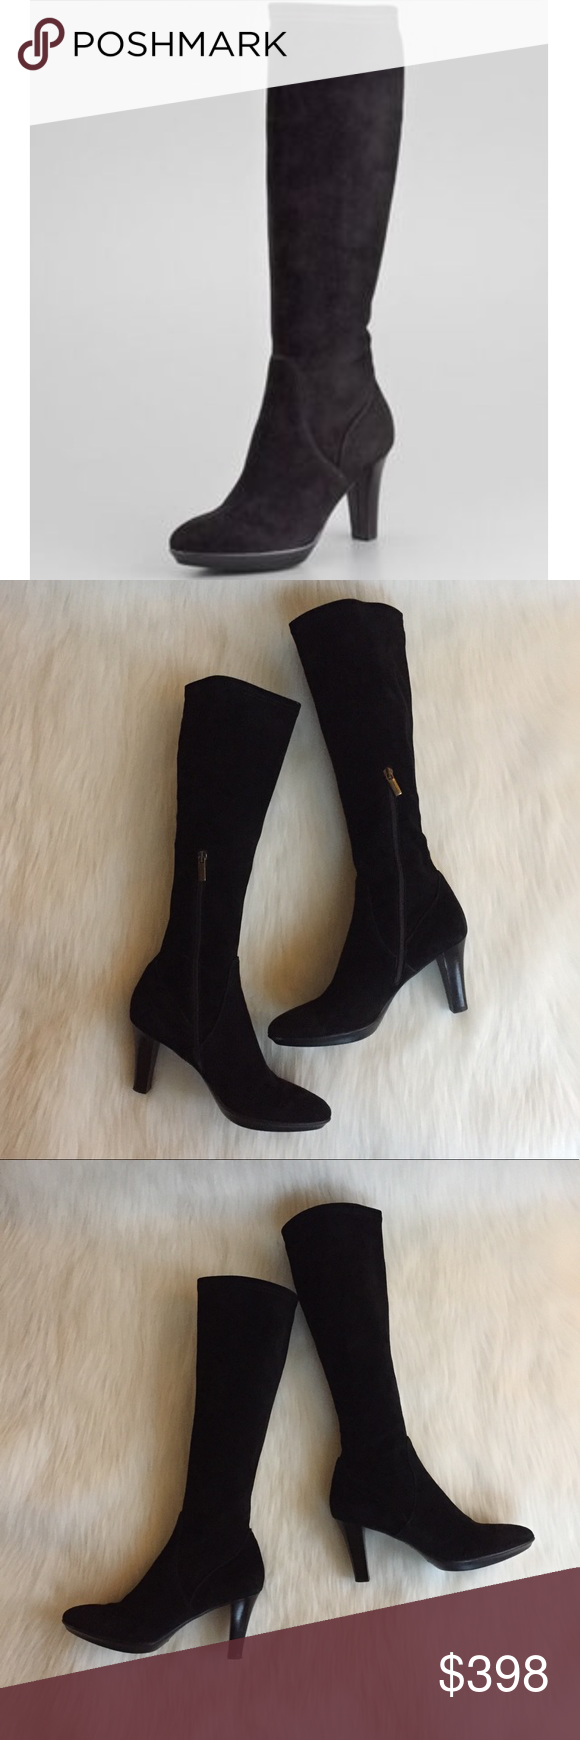 be910699145 Aquatalia by Marvin K. Rhumba Suede Tall Knee Boot Aquatalia by Marvin K.  Rhumba Stretch Black Suede Tall Knee Boot! Love these classic slender  profile ...